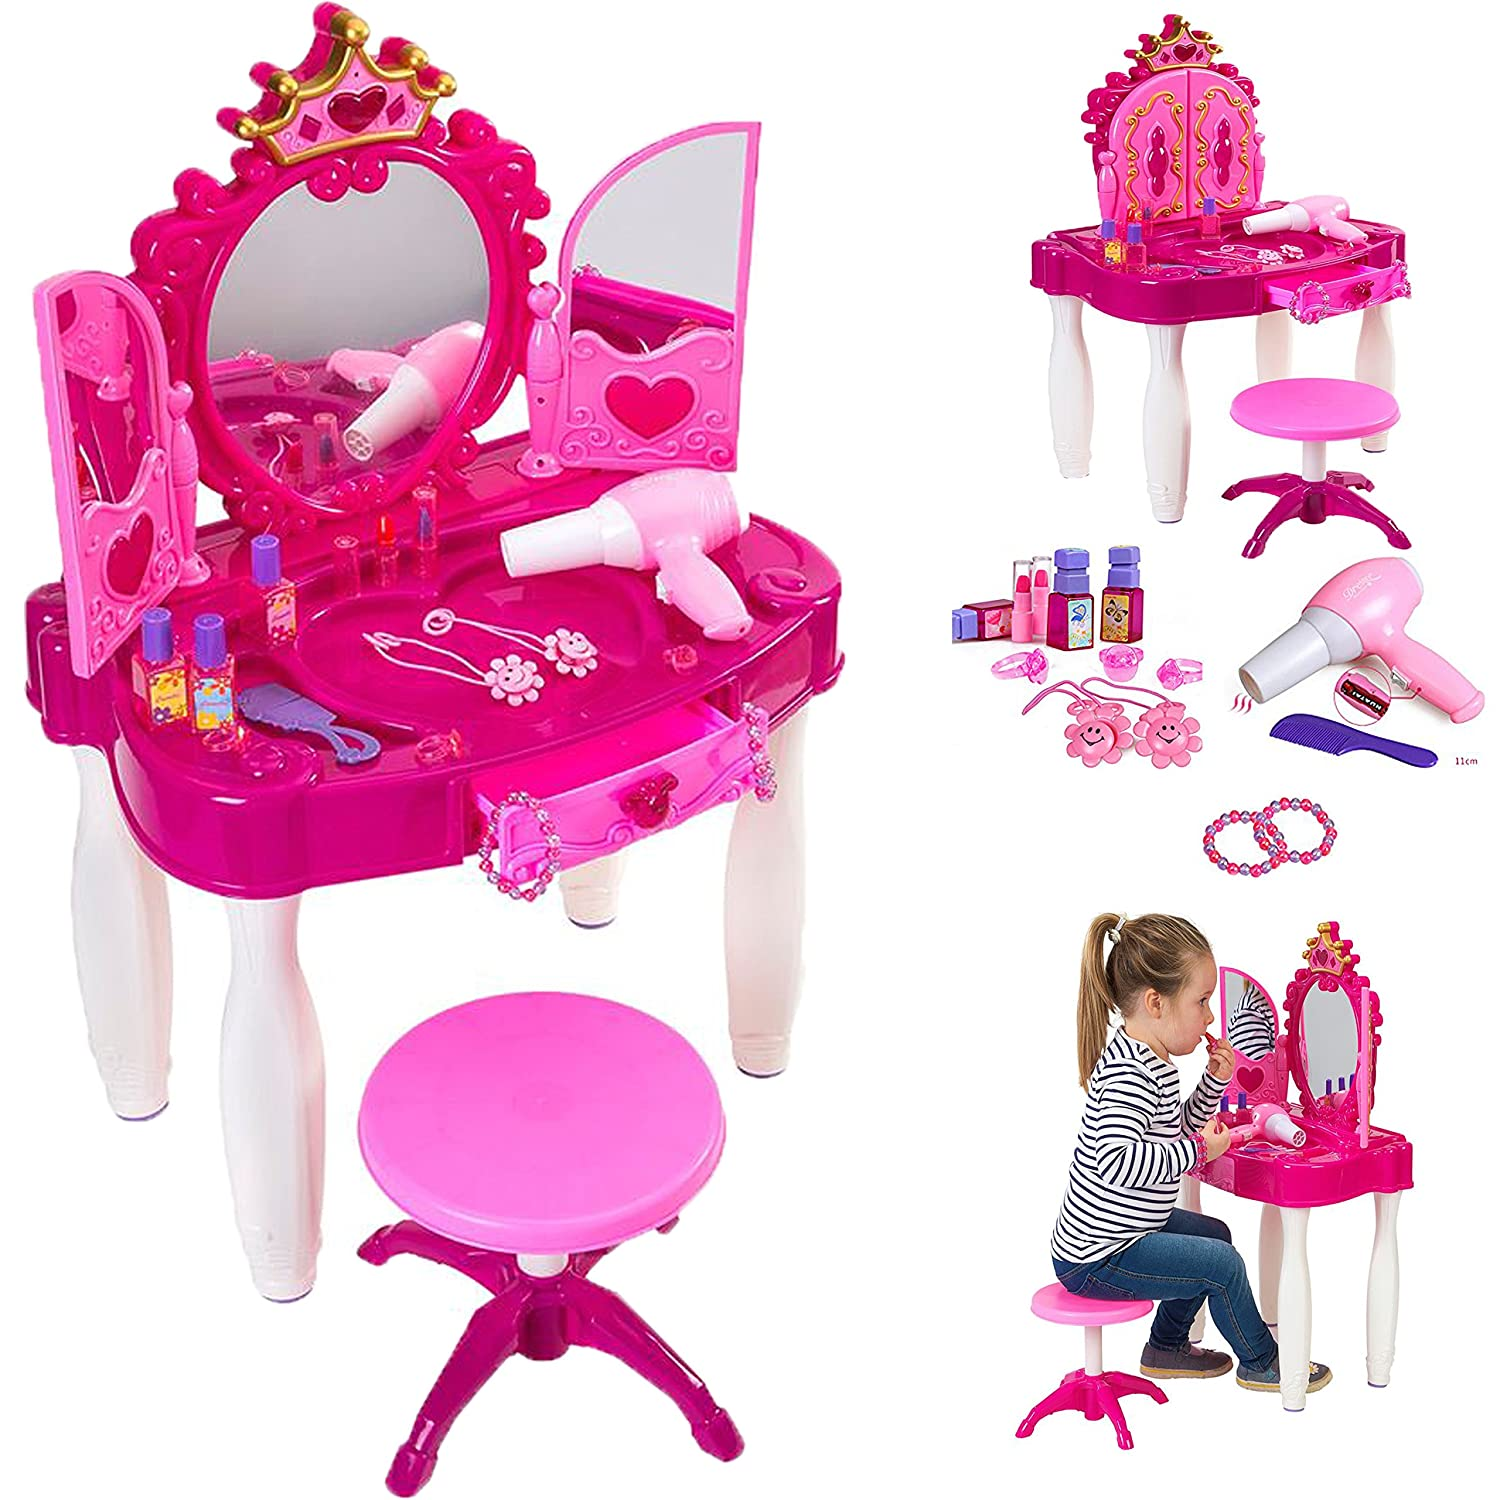 Childrens Girls Pink Vanity Dressing Table Mirror Glitter Jewellery Play  Set Toy: Amazon.co.uk: Toys & Games